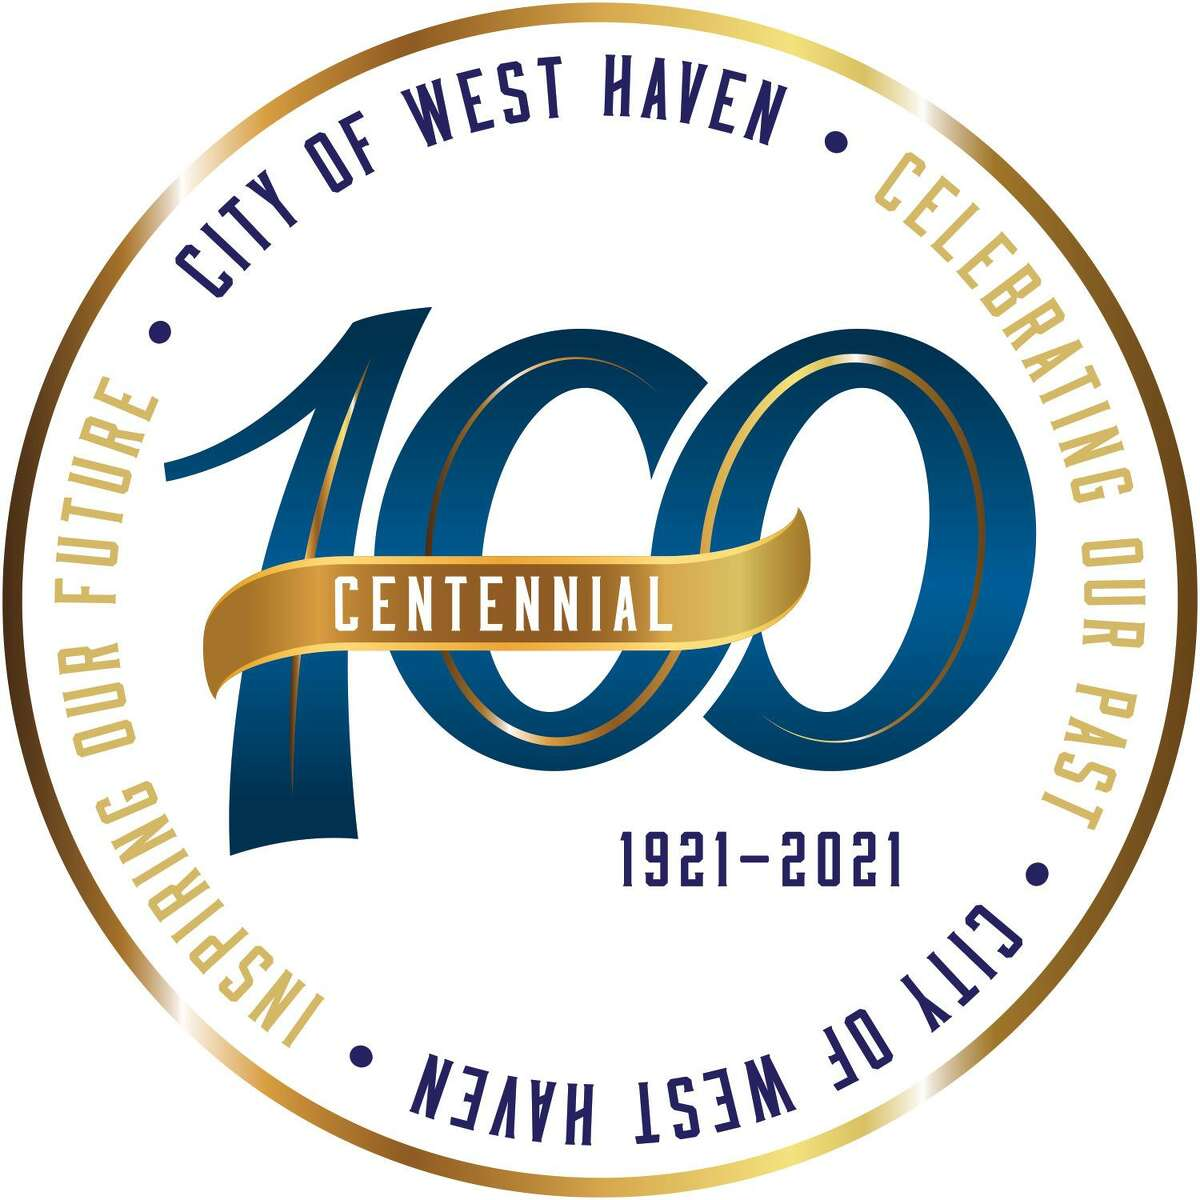 West Haven is celebrating its centennial this year.